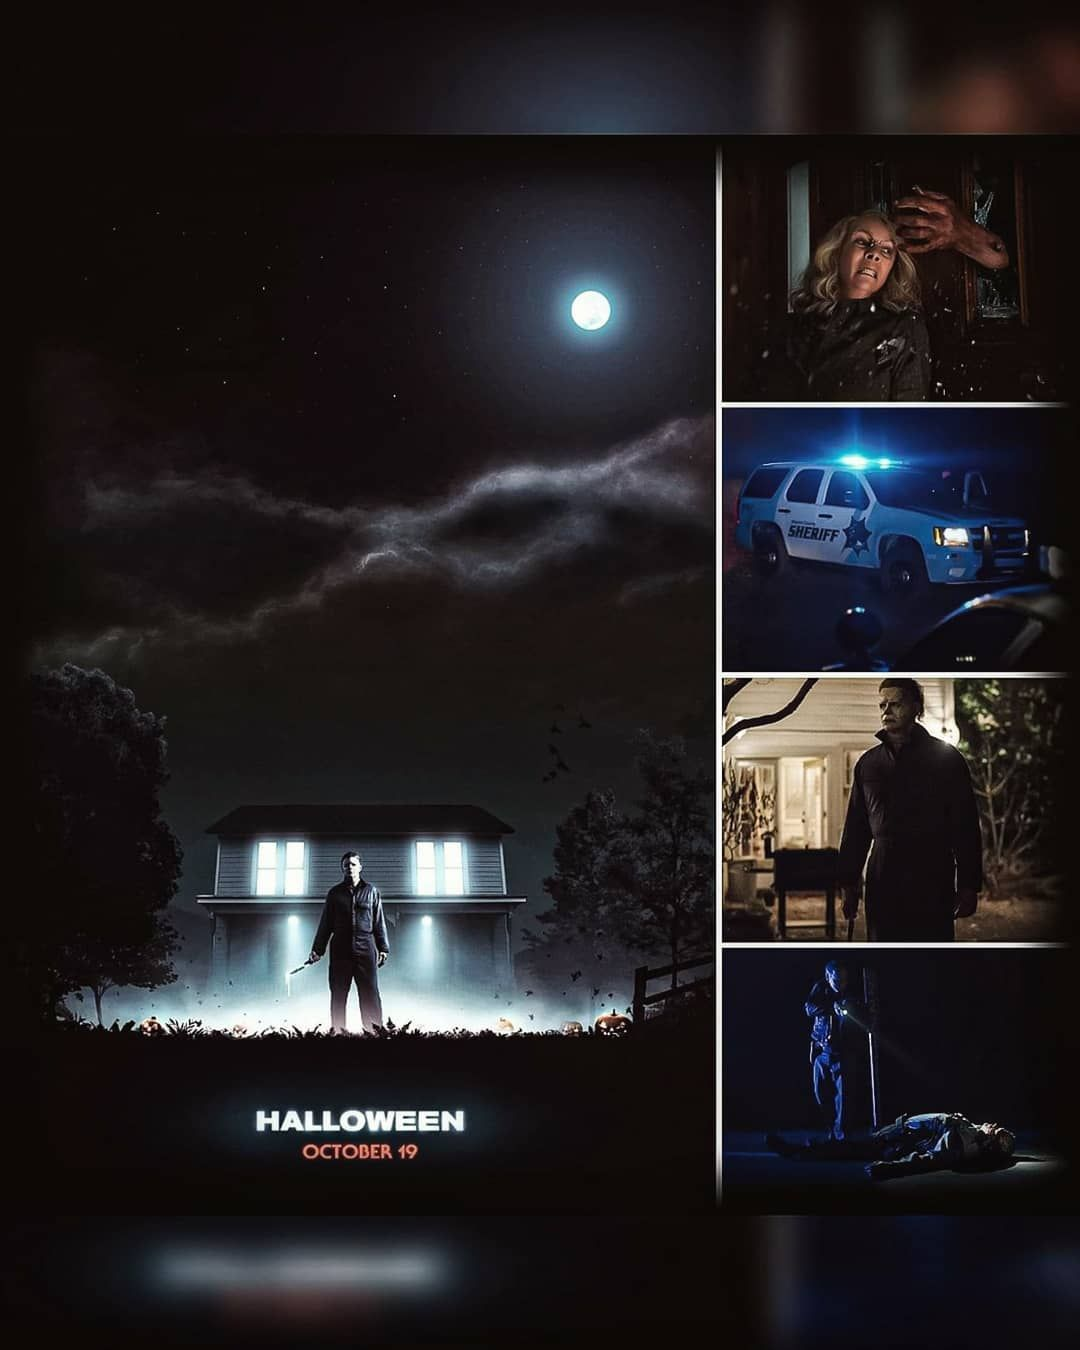 Old Hollywood October Halloween 2020 a Classic Hollywood Horror Movie Review by JJH Halloween